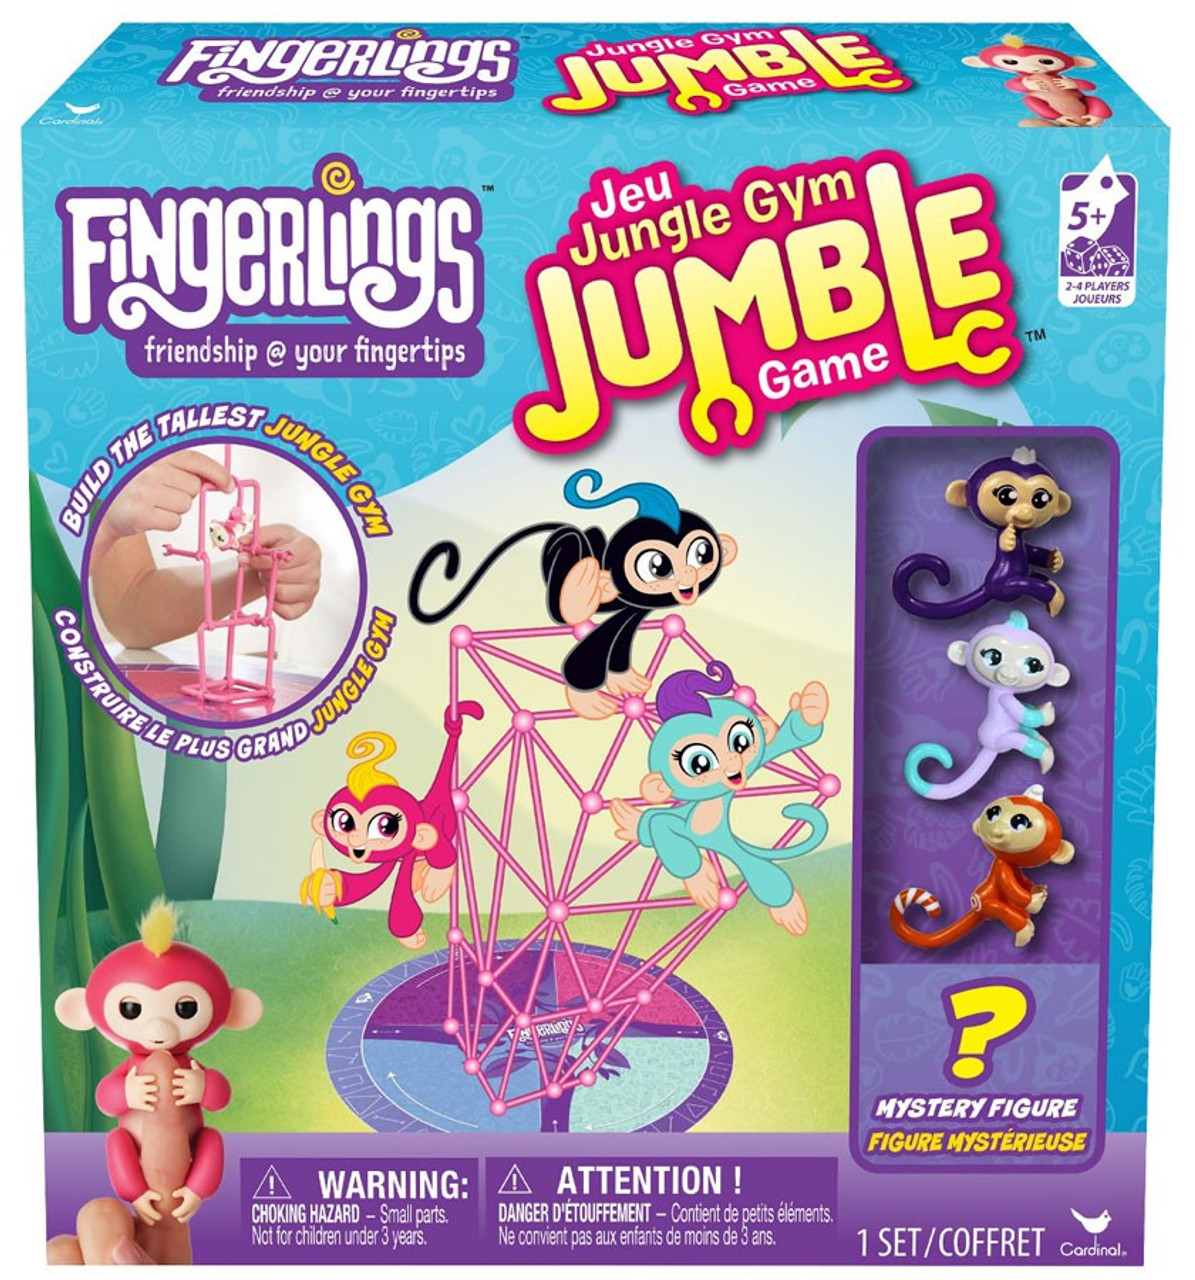 Electronic & Interactive Toys & Hobbies Fingerlings Jungle Gym Playset Liv The Baby Monkey Limited Edition Fingerling